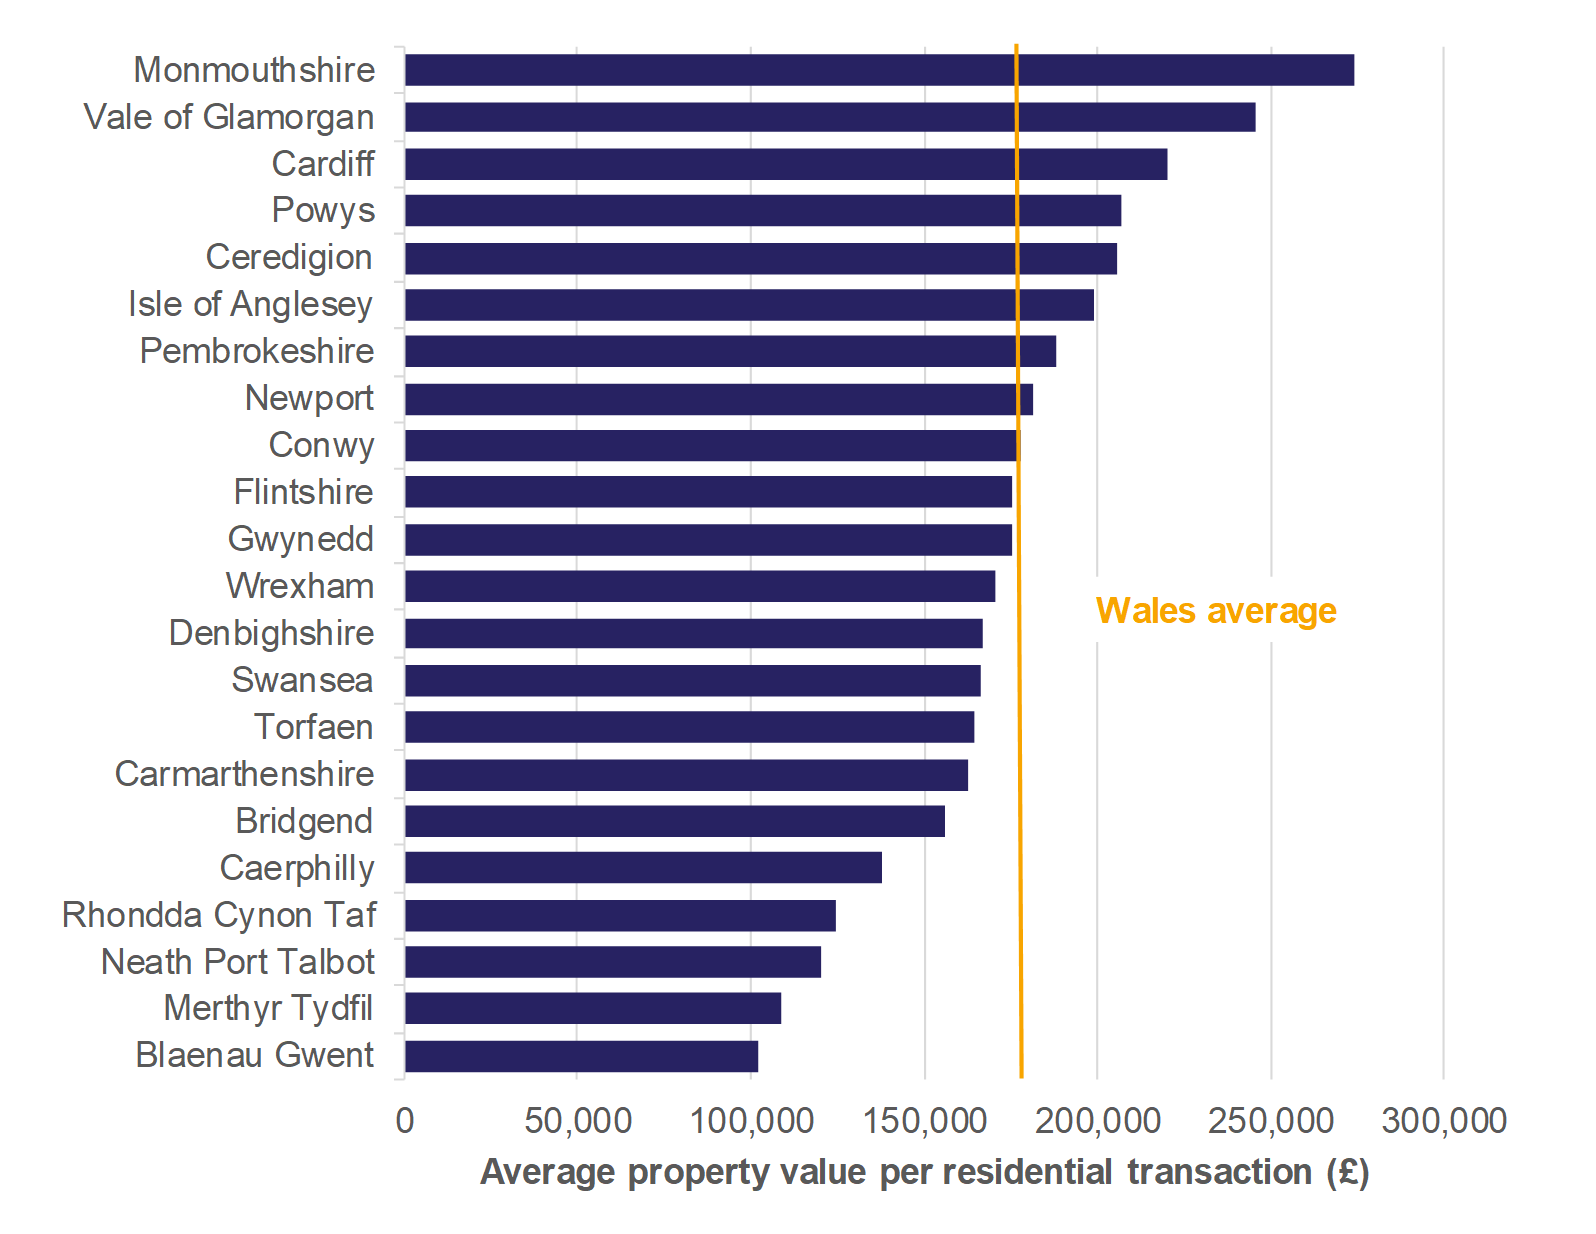 Figure 8.4 shows the average property value per residential transaction, for all local authorities and a Wales average.